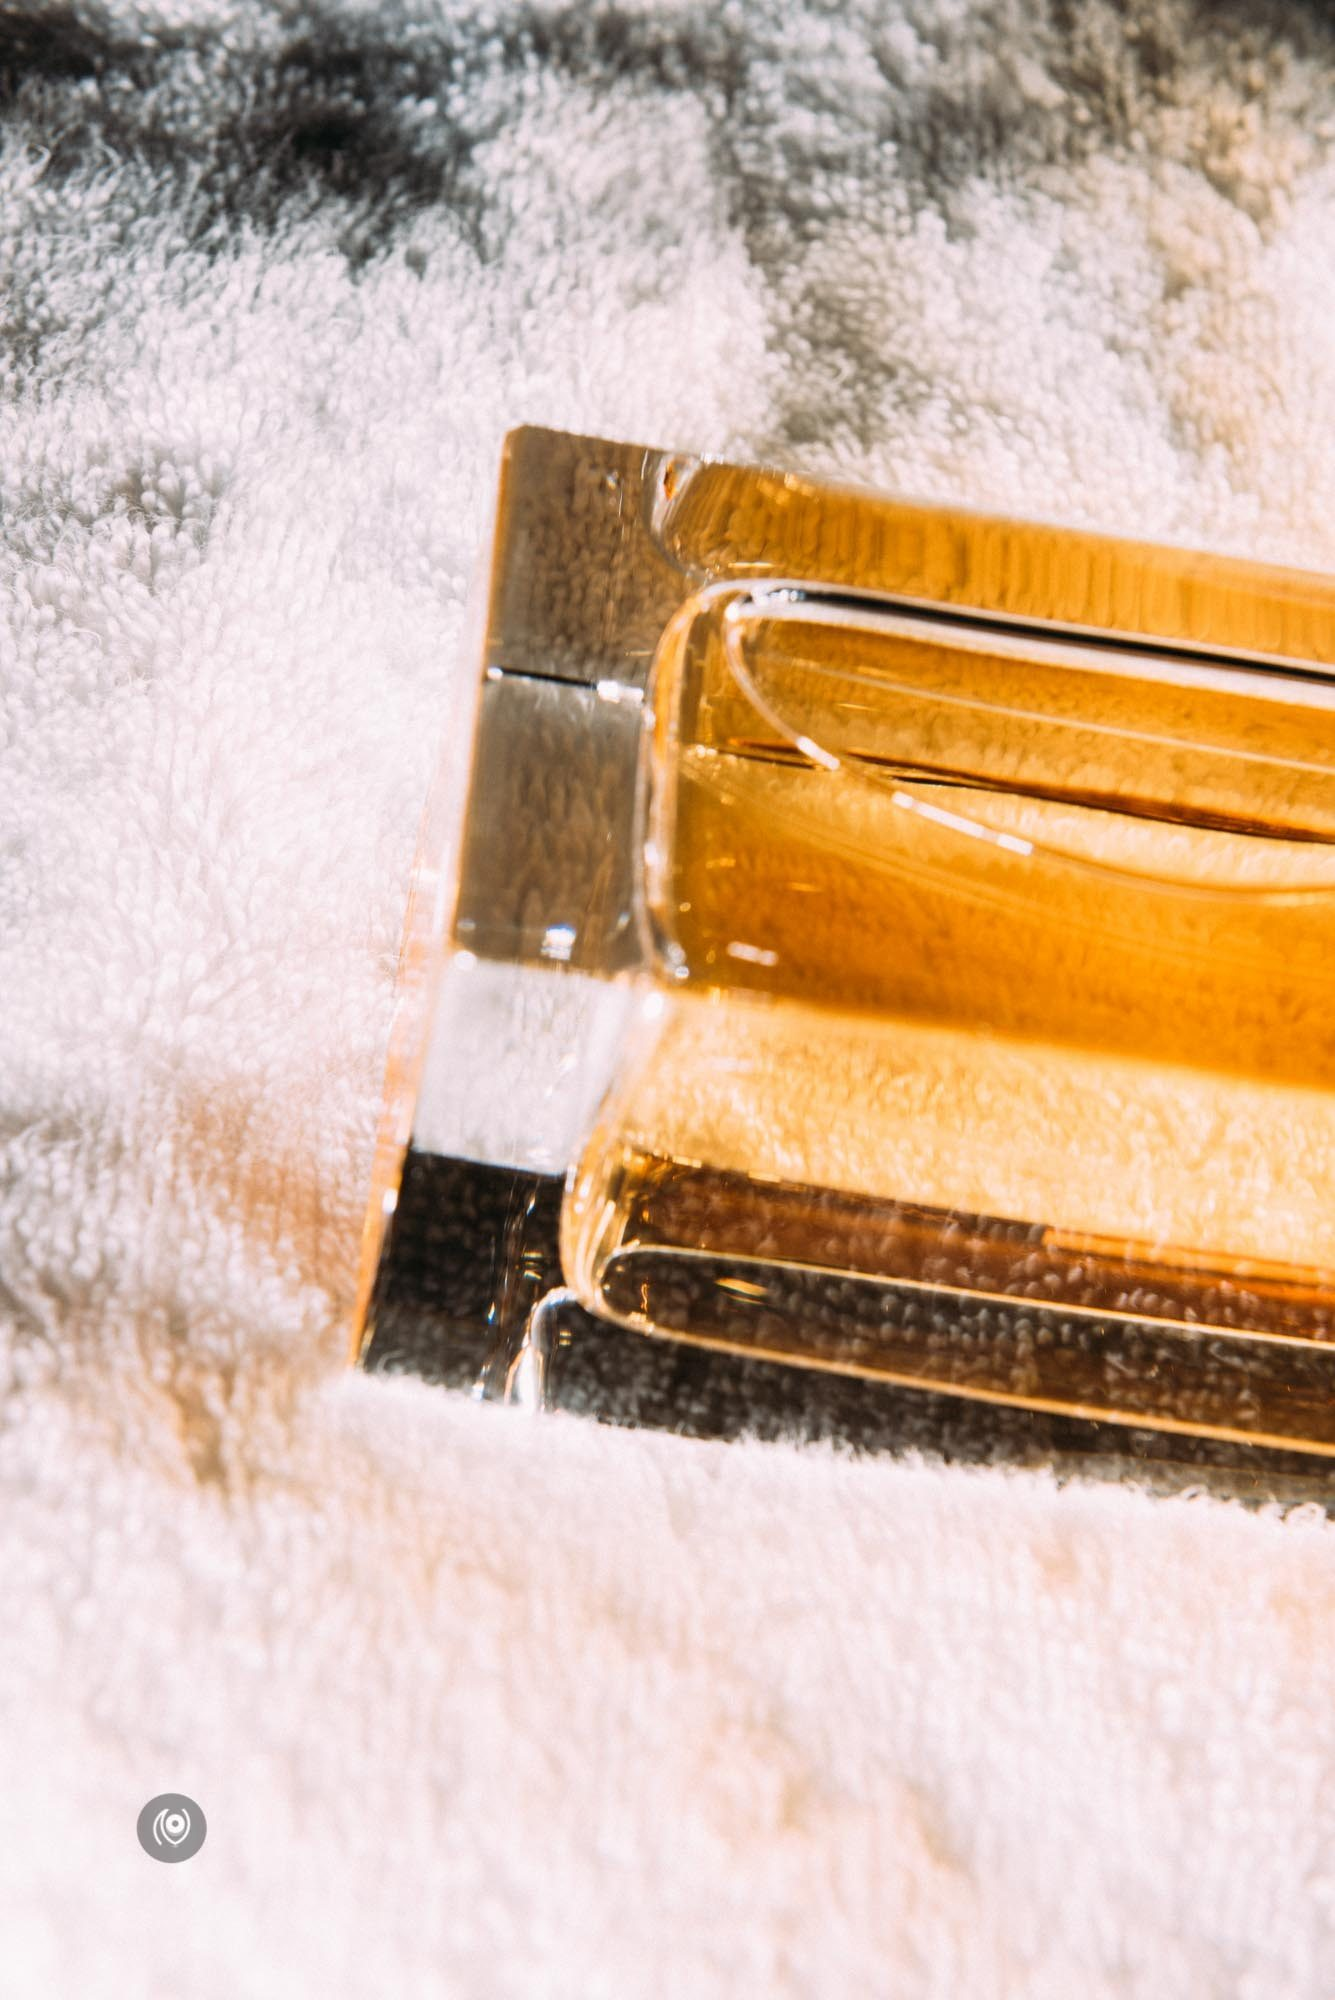 Naina.co, Visual Storyteller, Luxury Brands, Naina Redhu, Professional Photographer, Experience Collector, Luxury Photographer, Luxury Blogger, Lifestyle, Visual Storyteller for Luxury Brands, YSL, Yves Saint Laurent, Caftan, Le Vestiaire des Parfums, Perfume Wardrobe Collection, Calice Becker, Parfumier, Unisex, Incense, Fragrance, Perfume, Scent, #FragranceOfTheMonth, FragranceOfTheMonth, Fragrance Of The Month